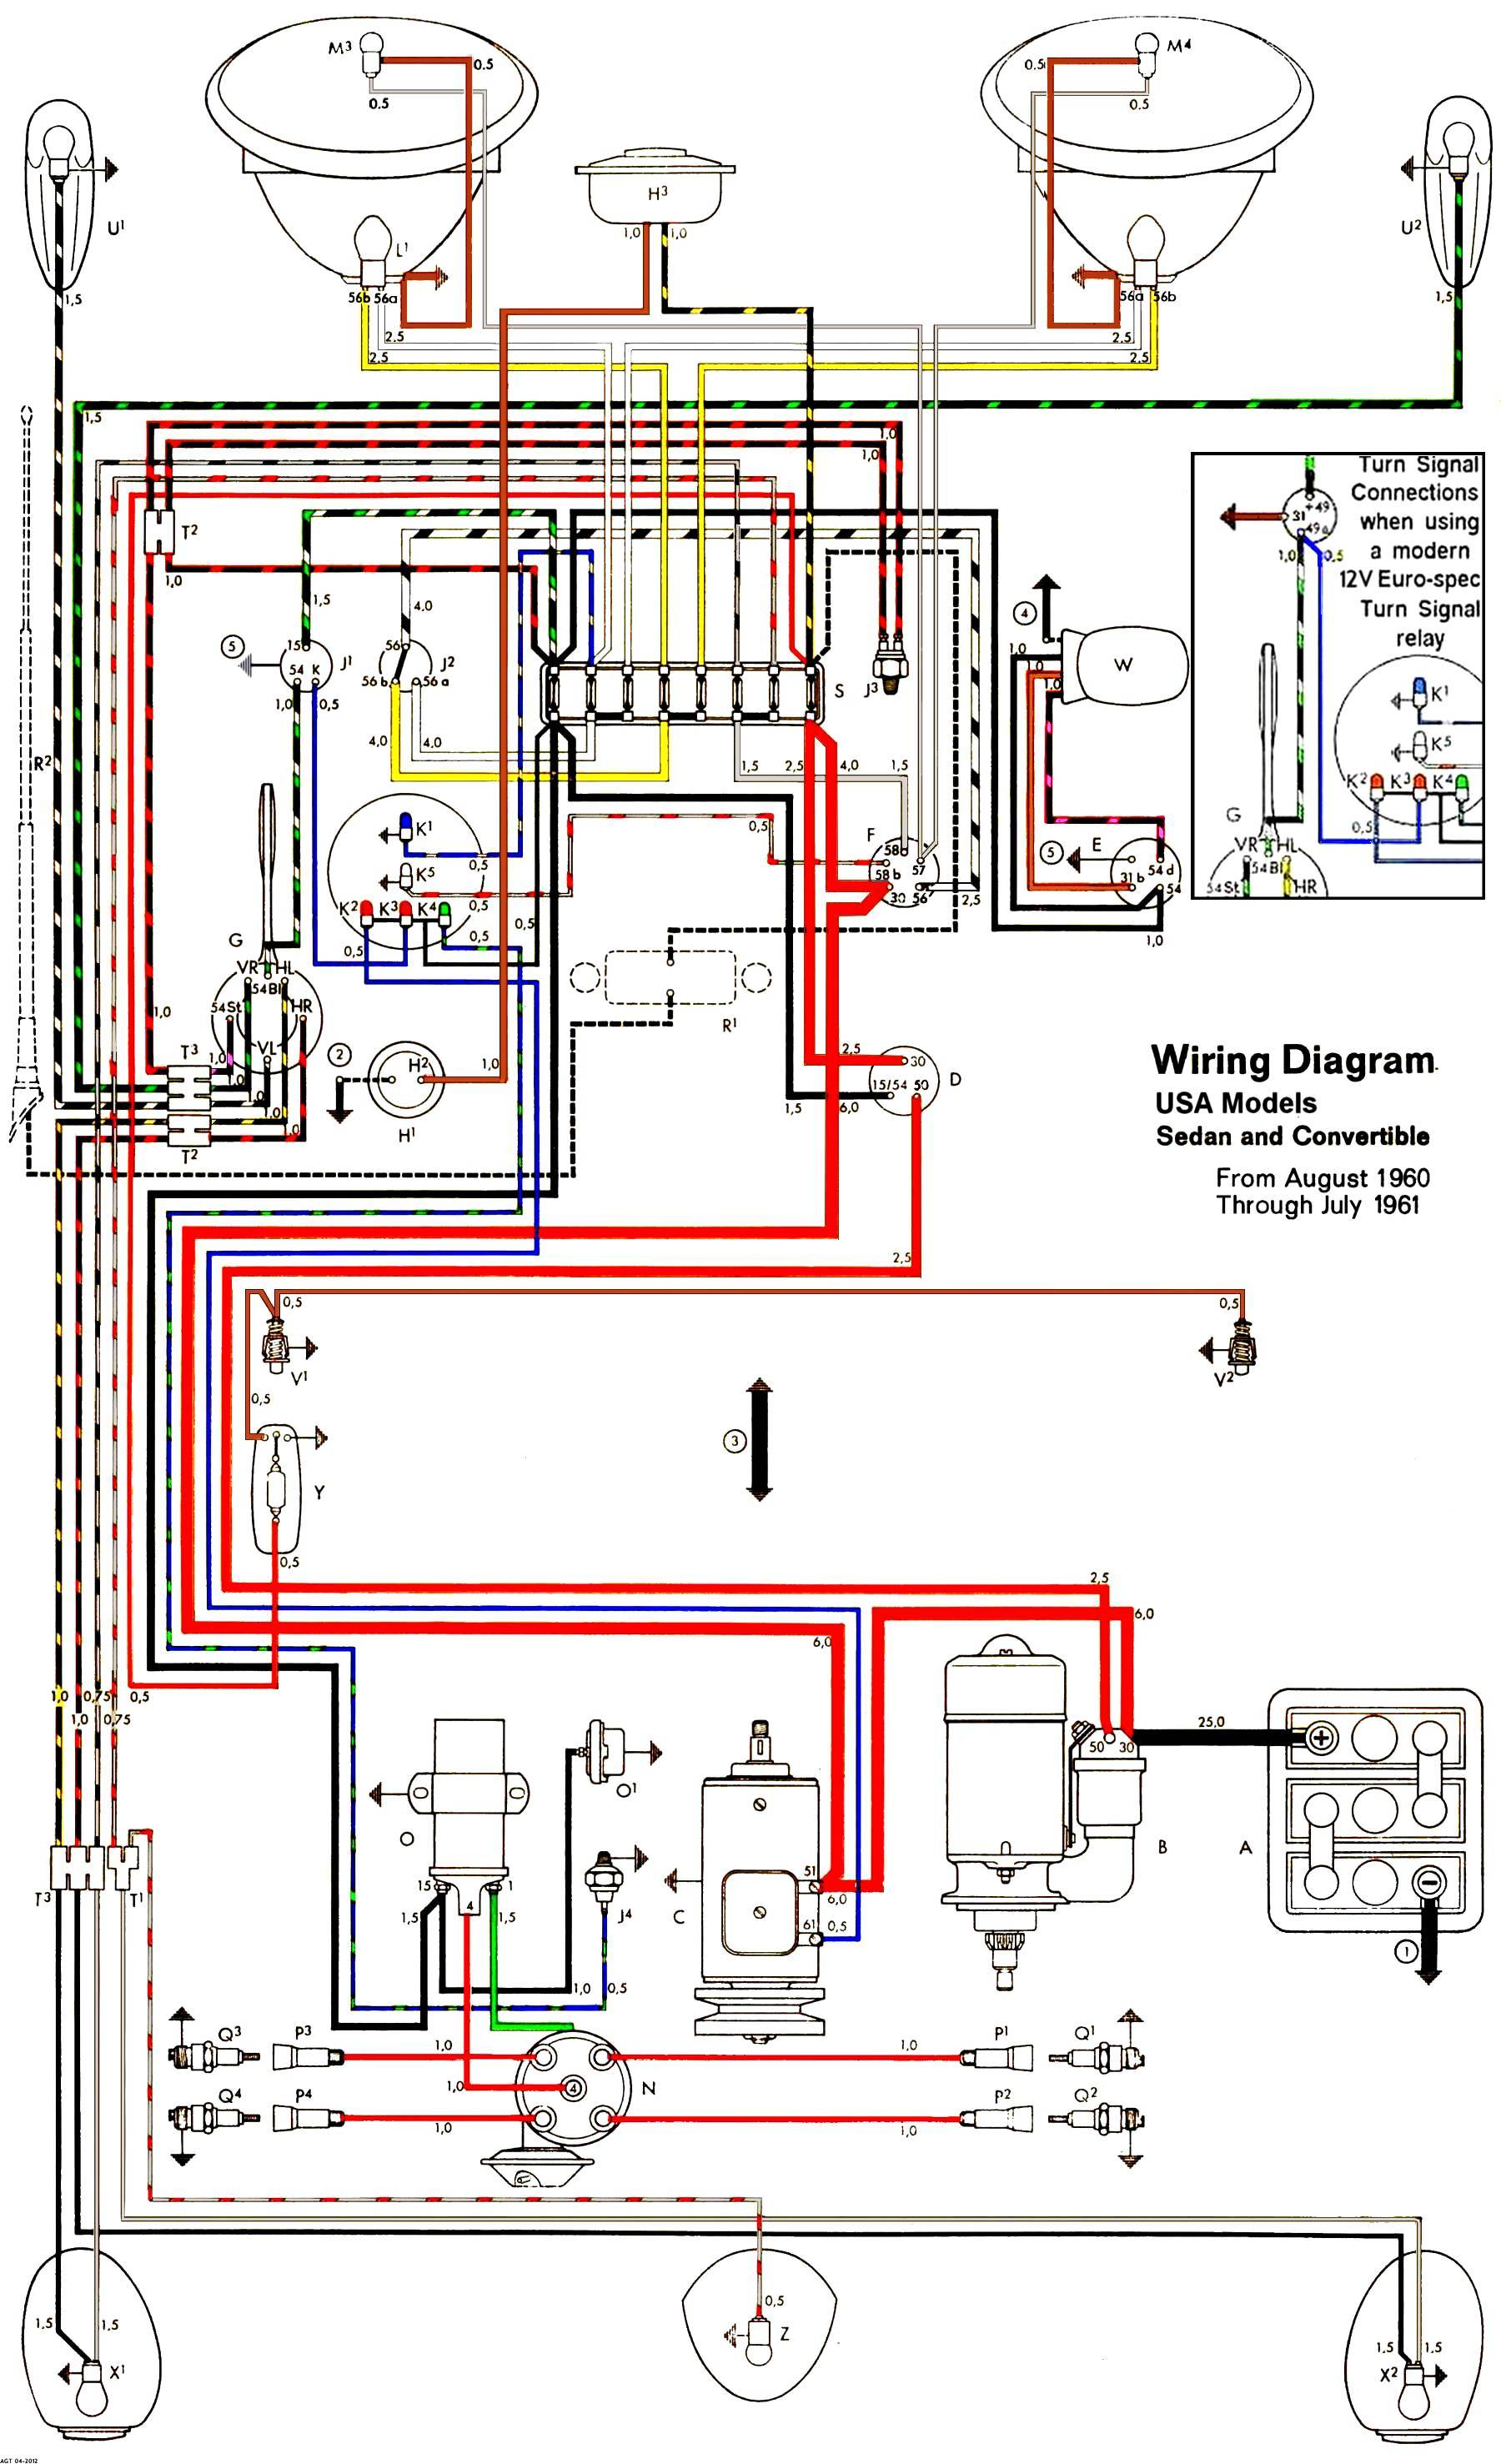 56 Chevy Generator Wiring - Data Wiring Diagram Update on chevrolet ignition wiring diagram, chevrolet turn signal wiring diagram, chevrolet solenoid wiring diagram,